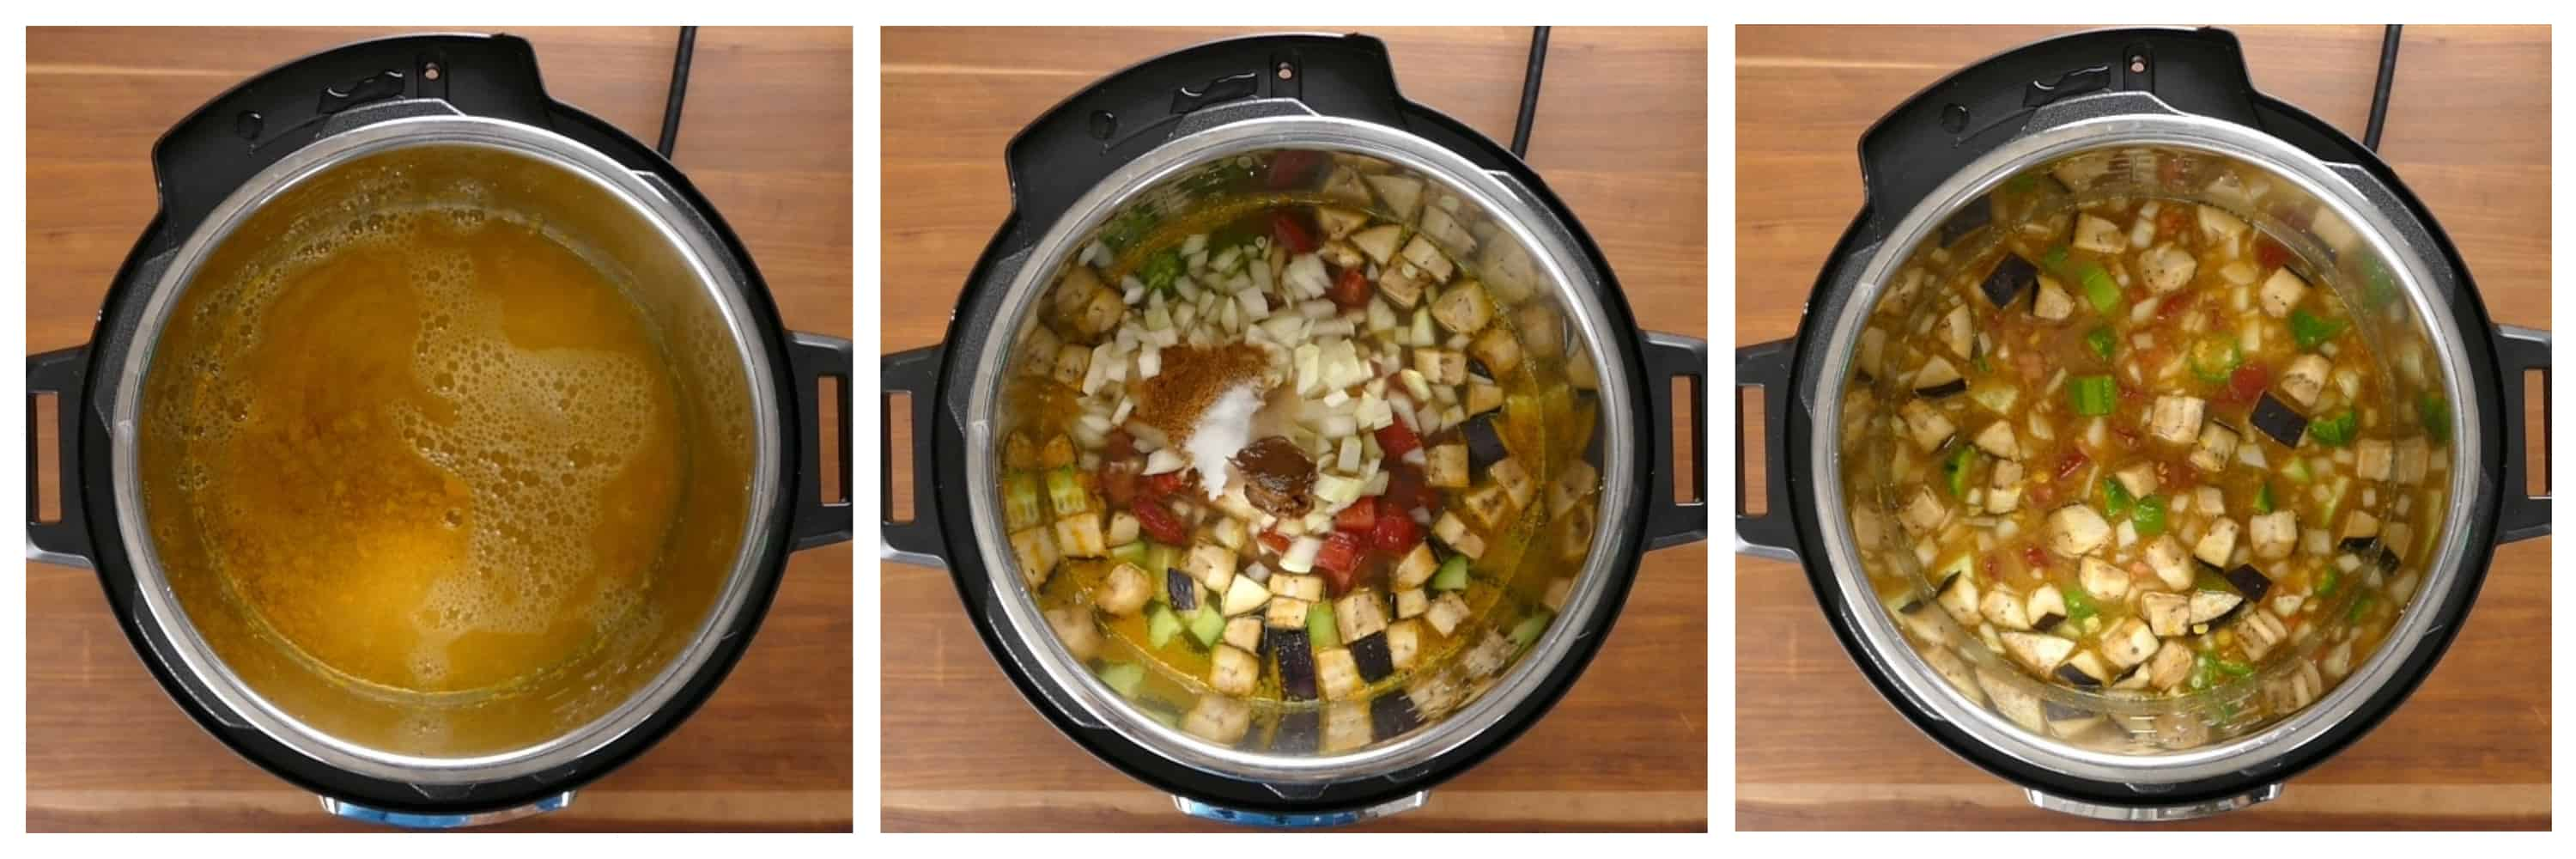 Instant Pot Sambar Instructions 2 collage - cooked dal, added vegetables and spices, stirred - Paint the Kitchen Red